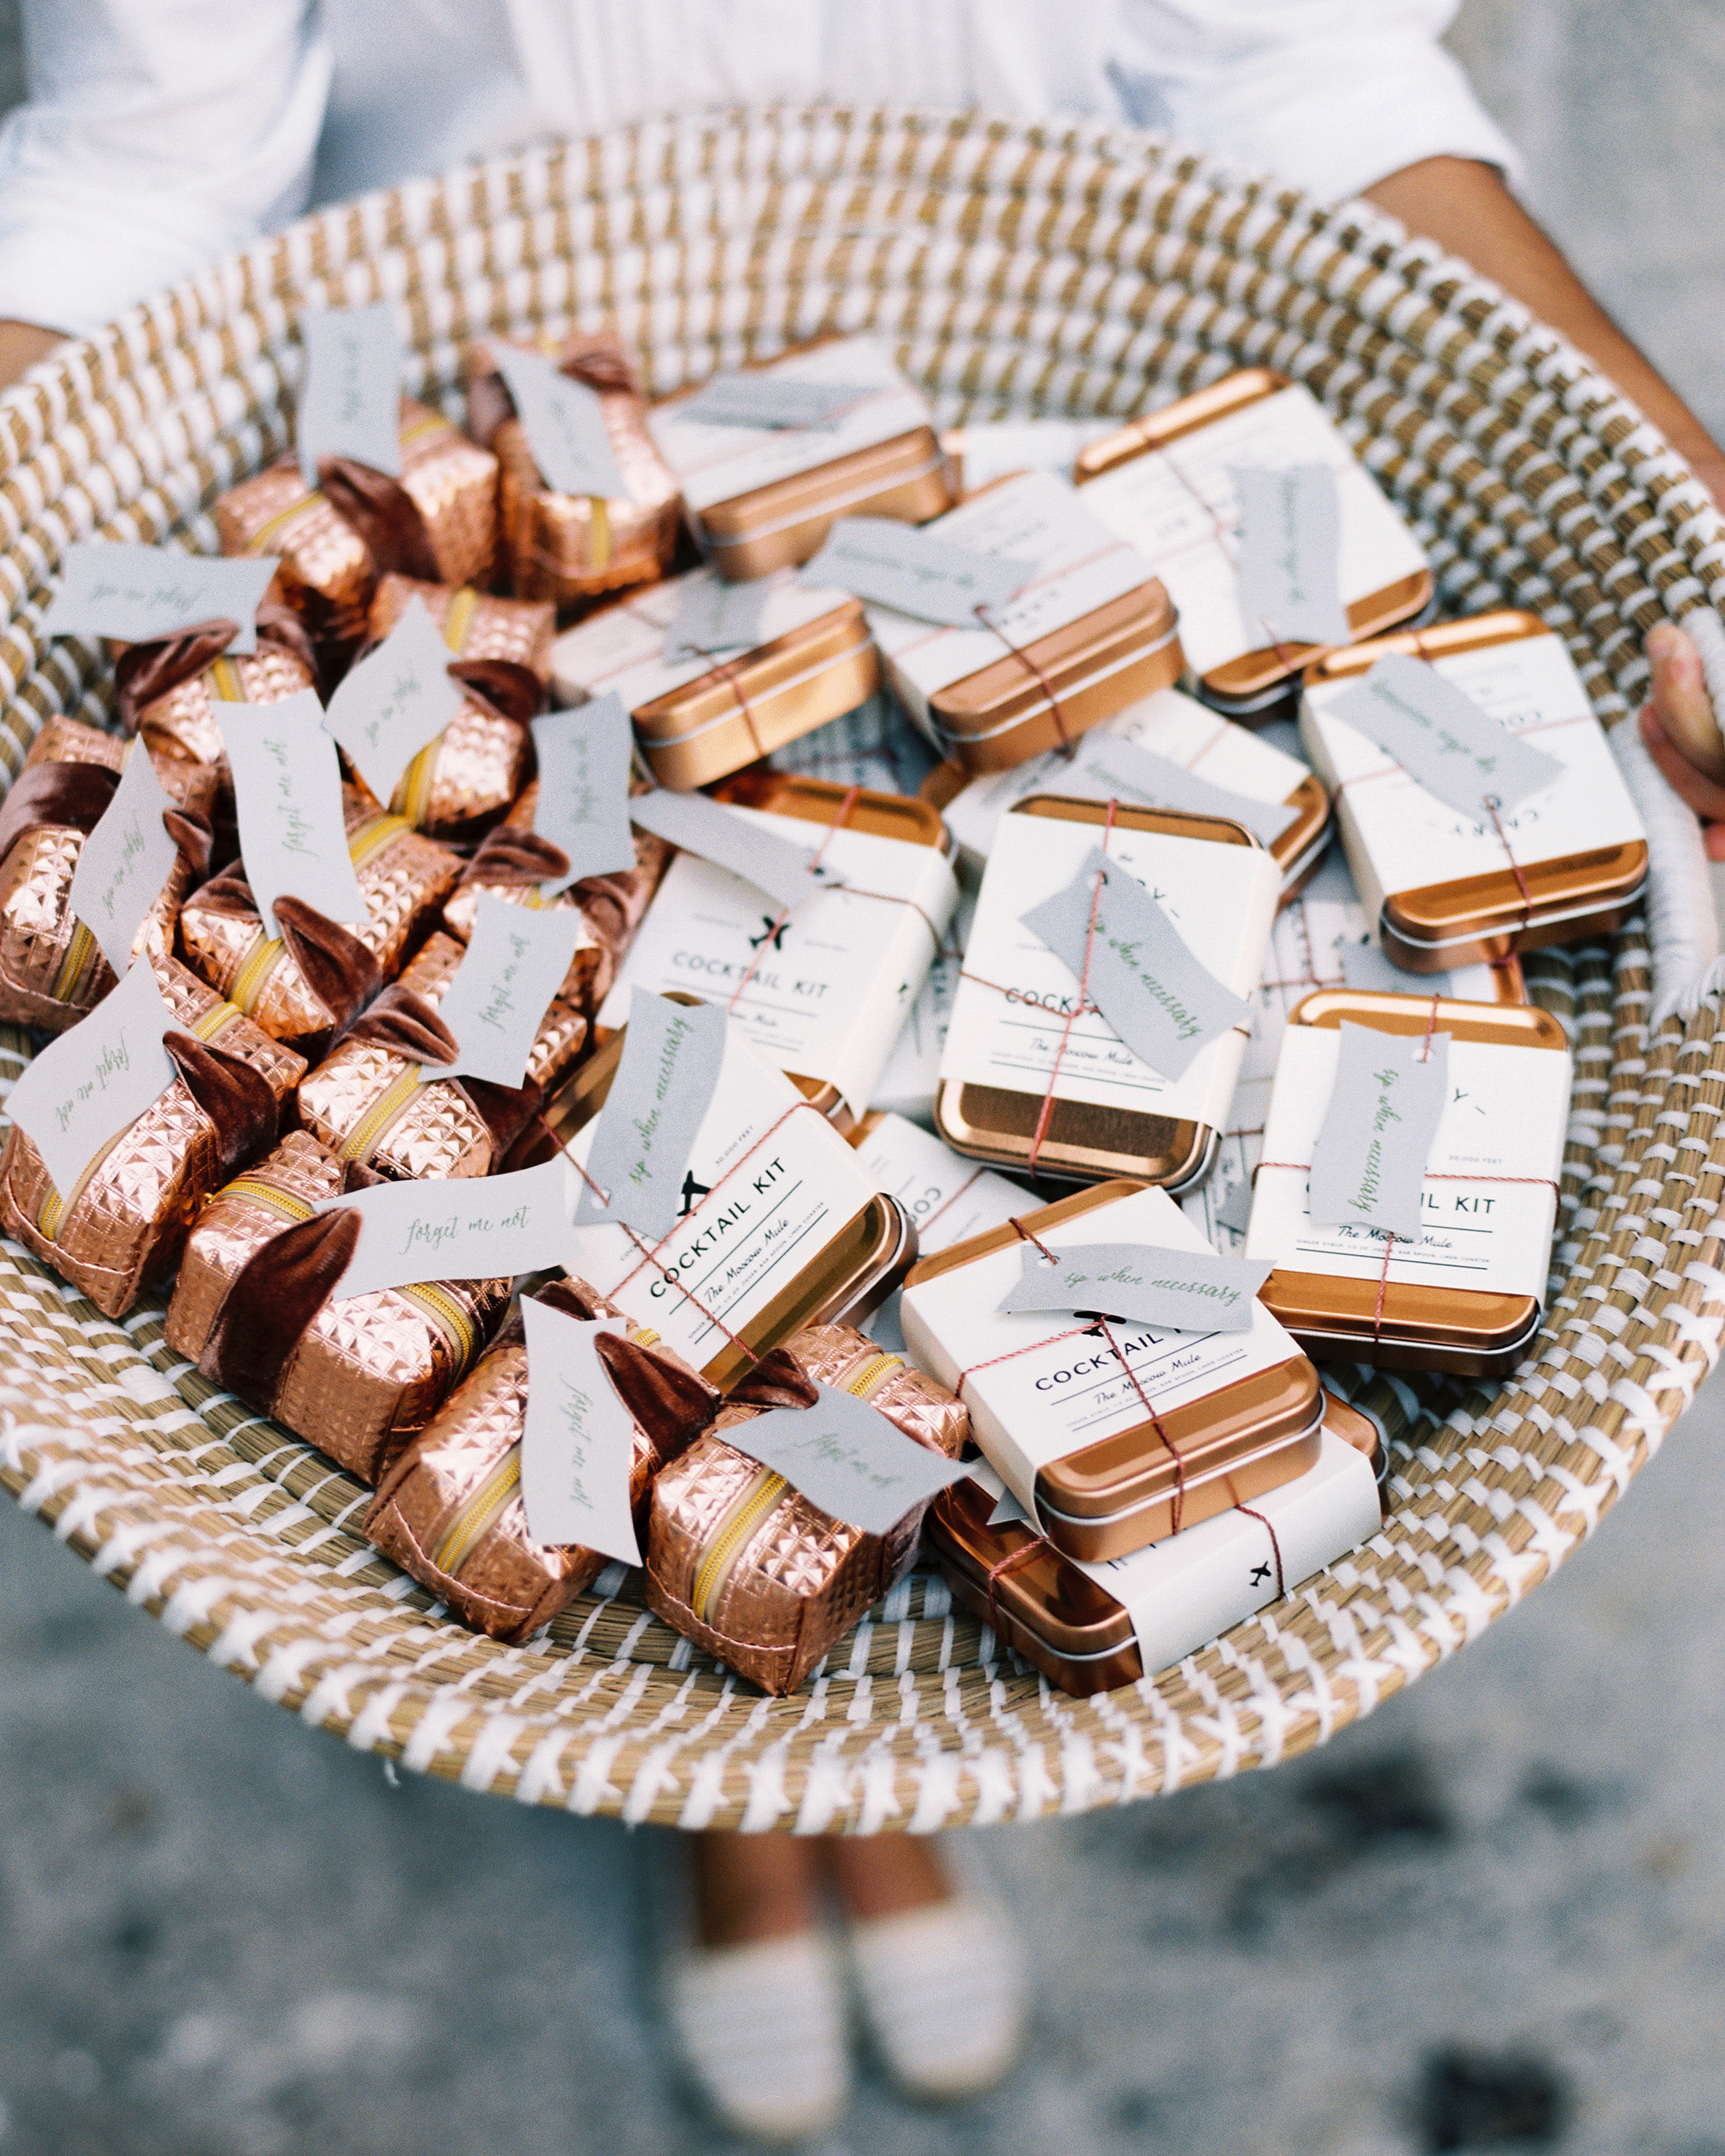 Great Wedding Gifts Ideas: 50 Creative Wedding Favors That Will Delight Your Guests